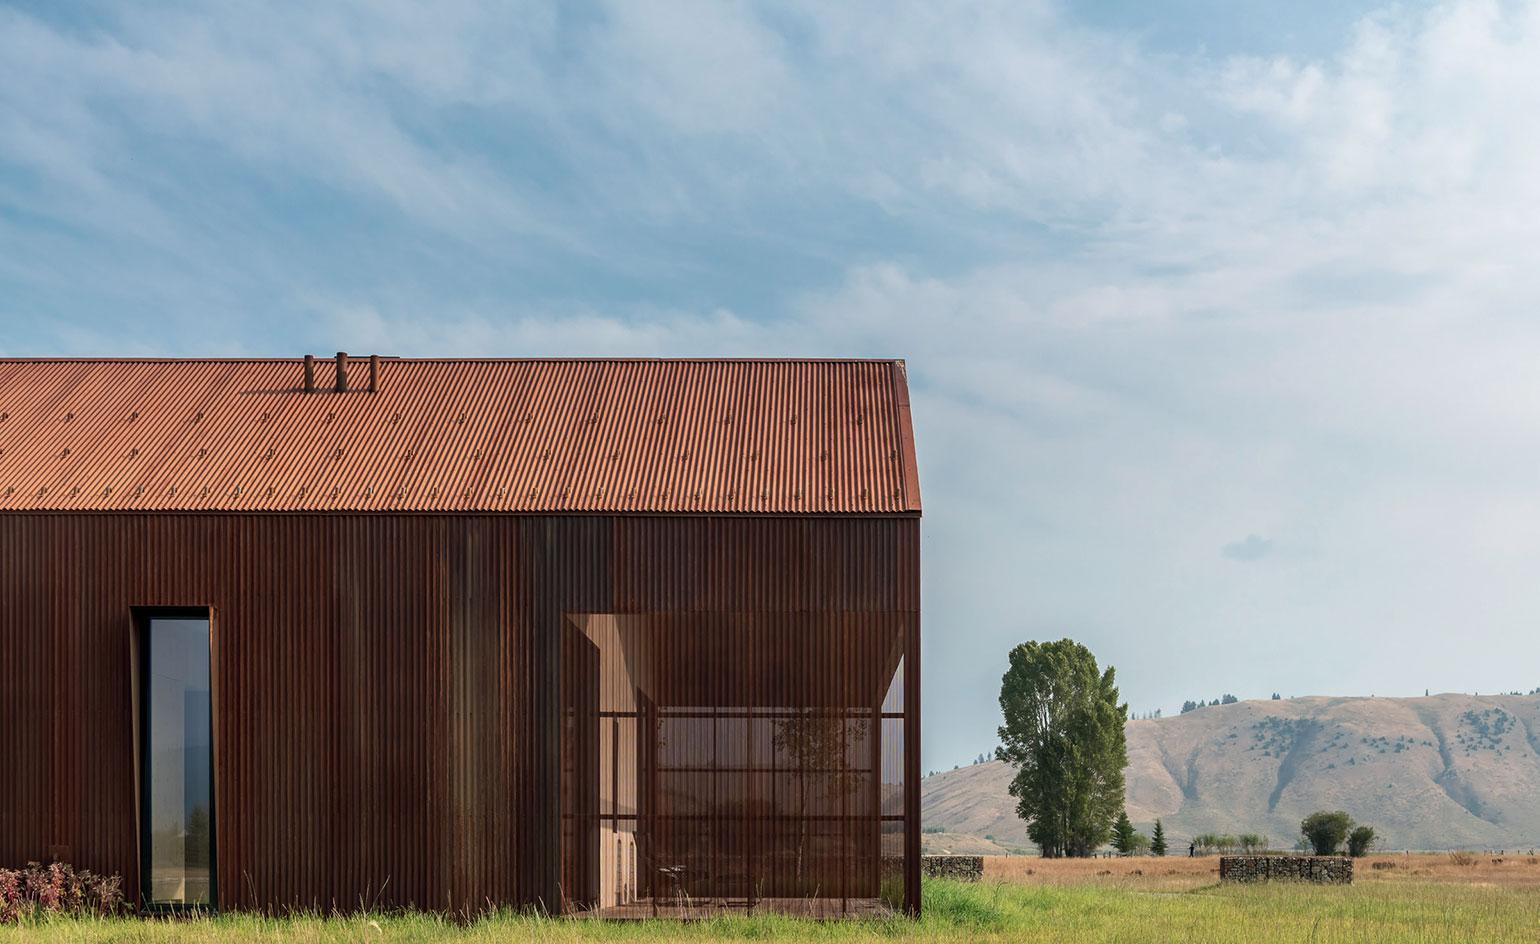 A Corten house channels agrarian aesthetics in Wyoming